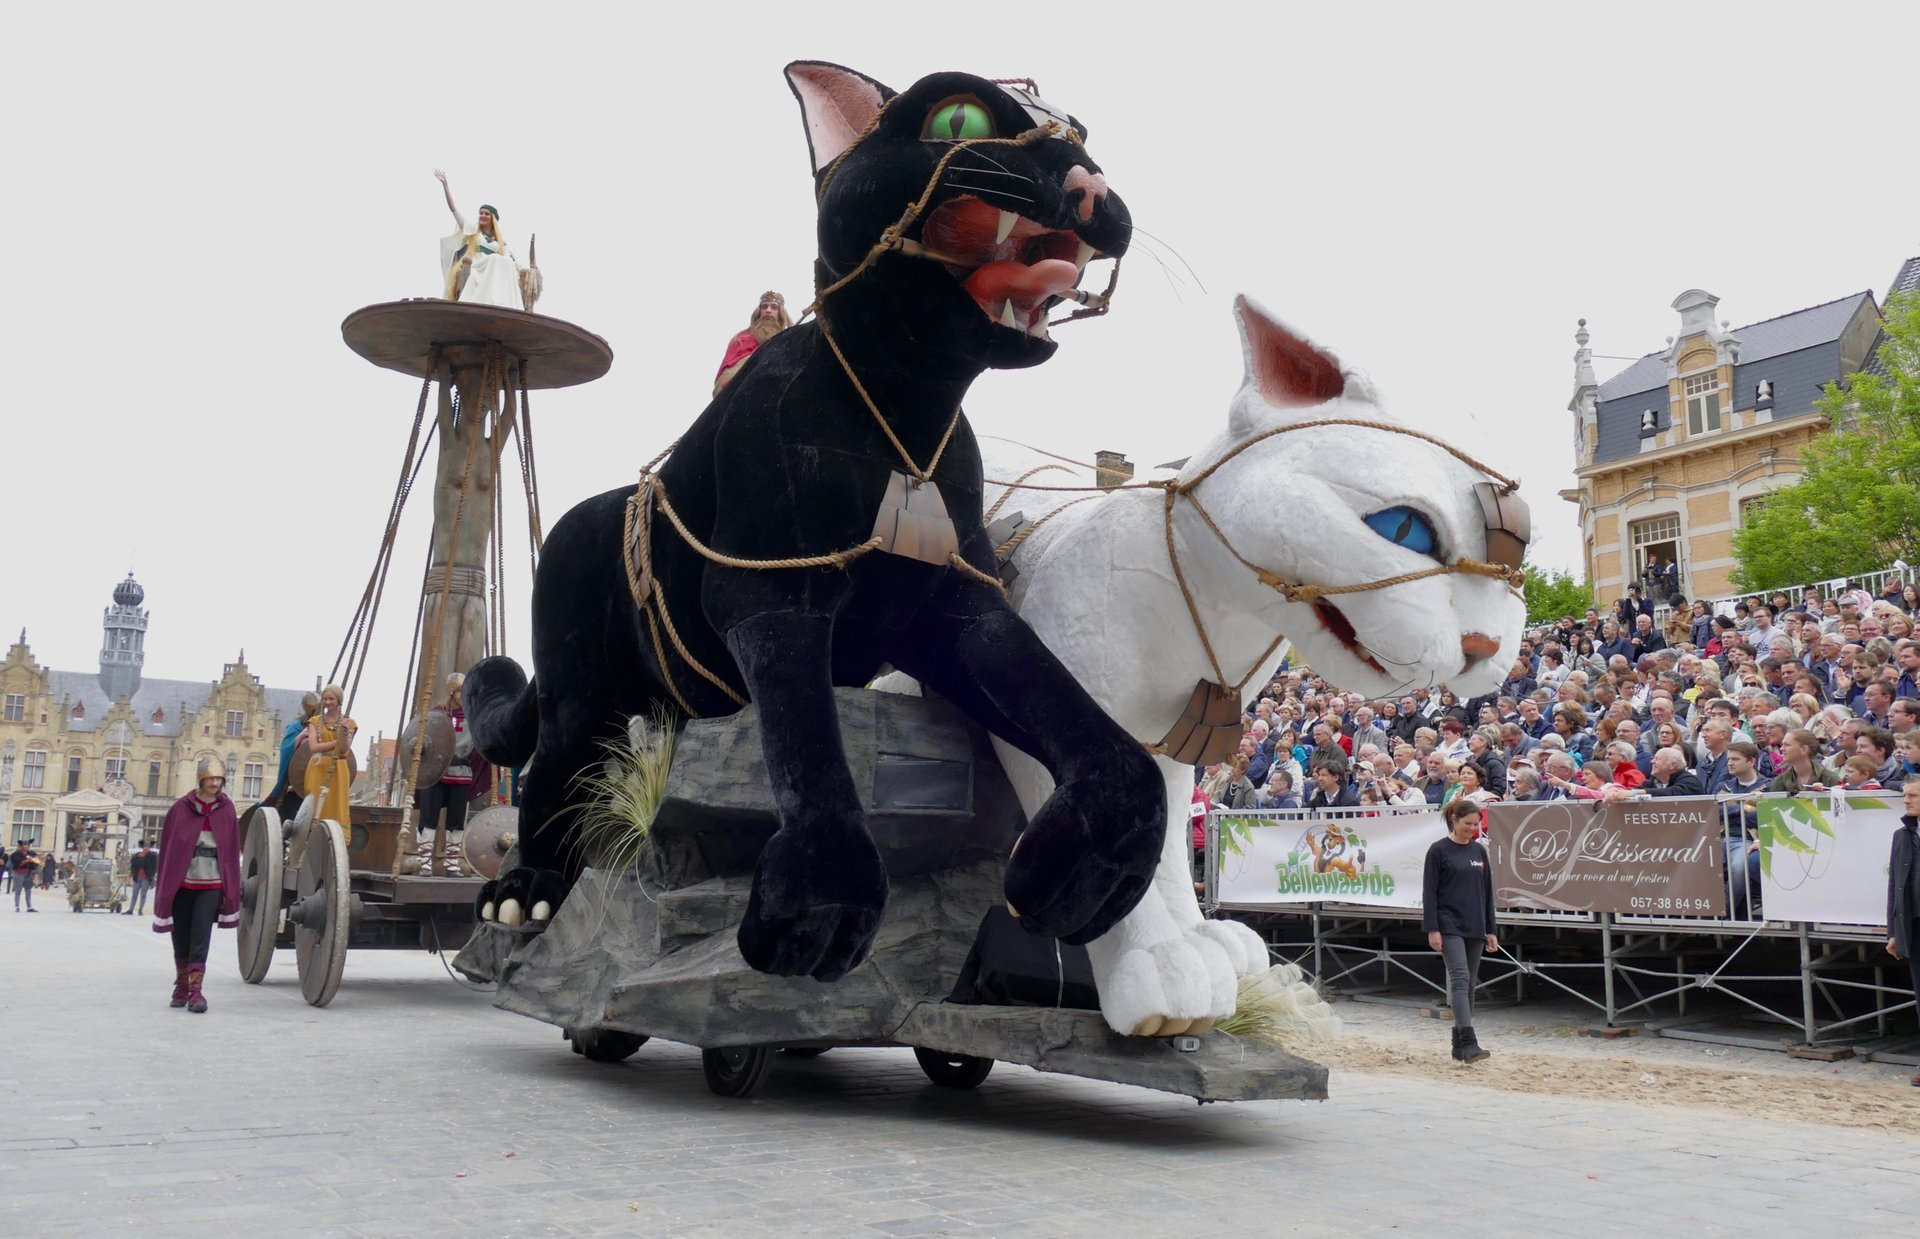 Kattenstoet in Belgium 2020 - Best Time